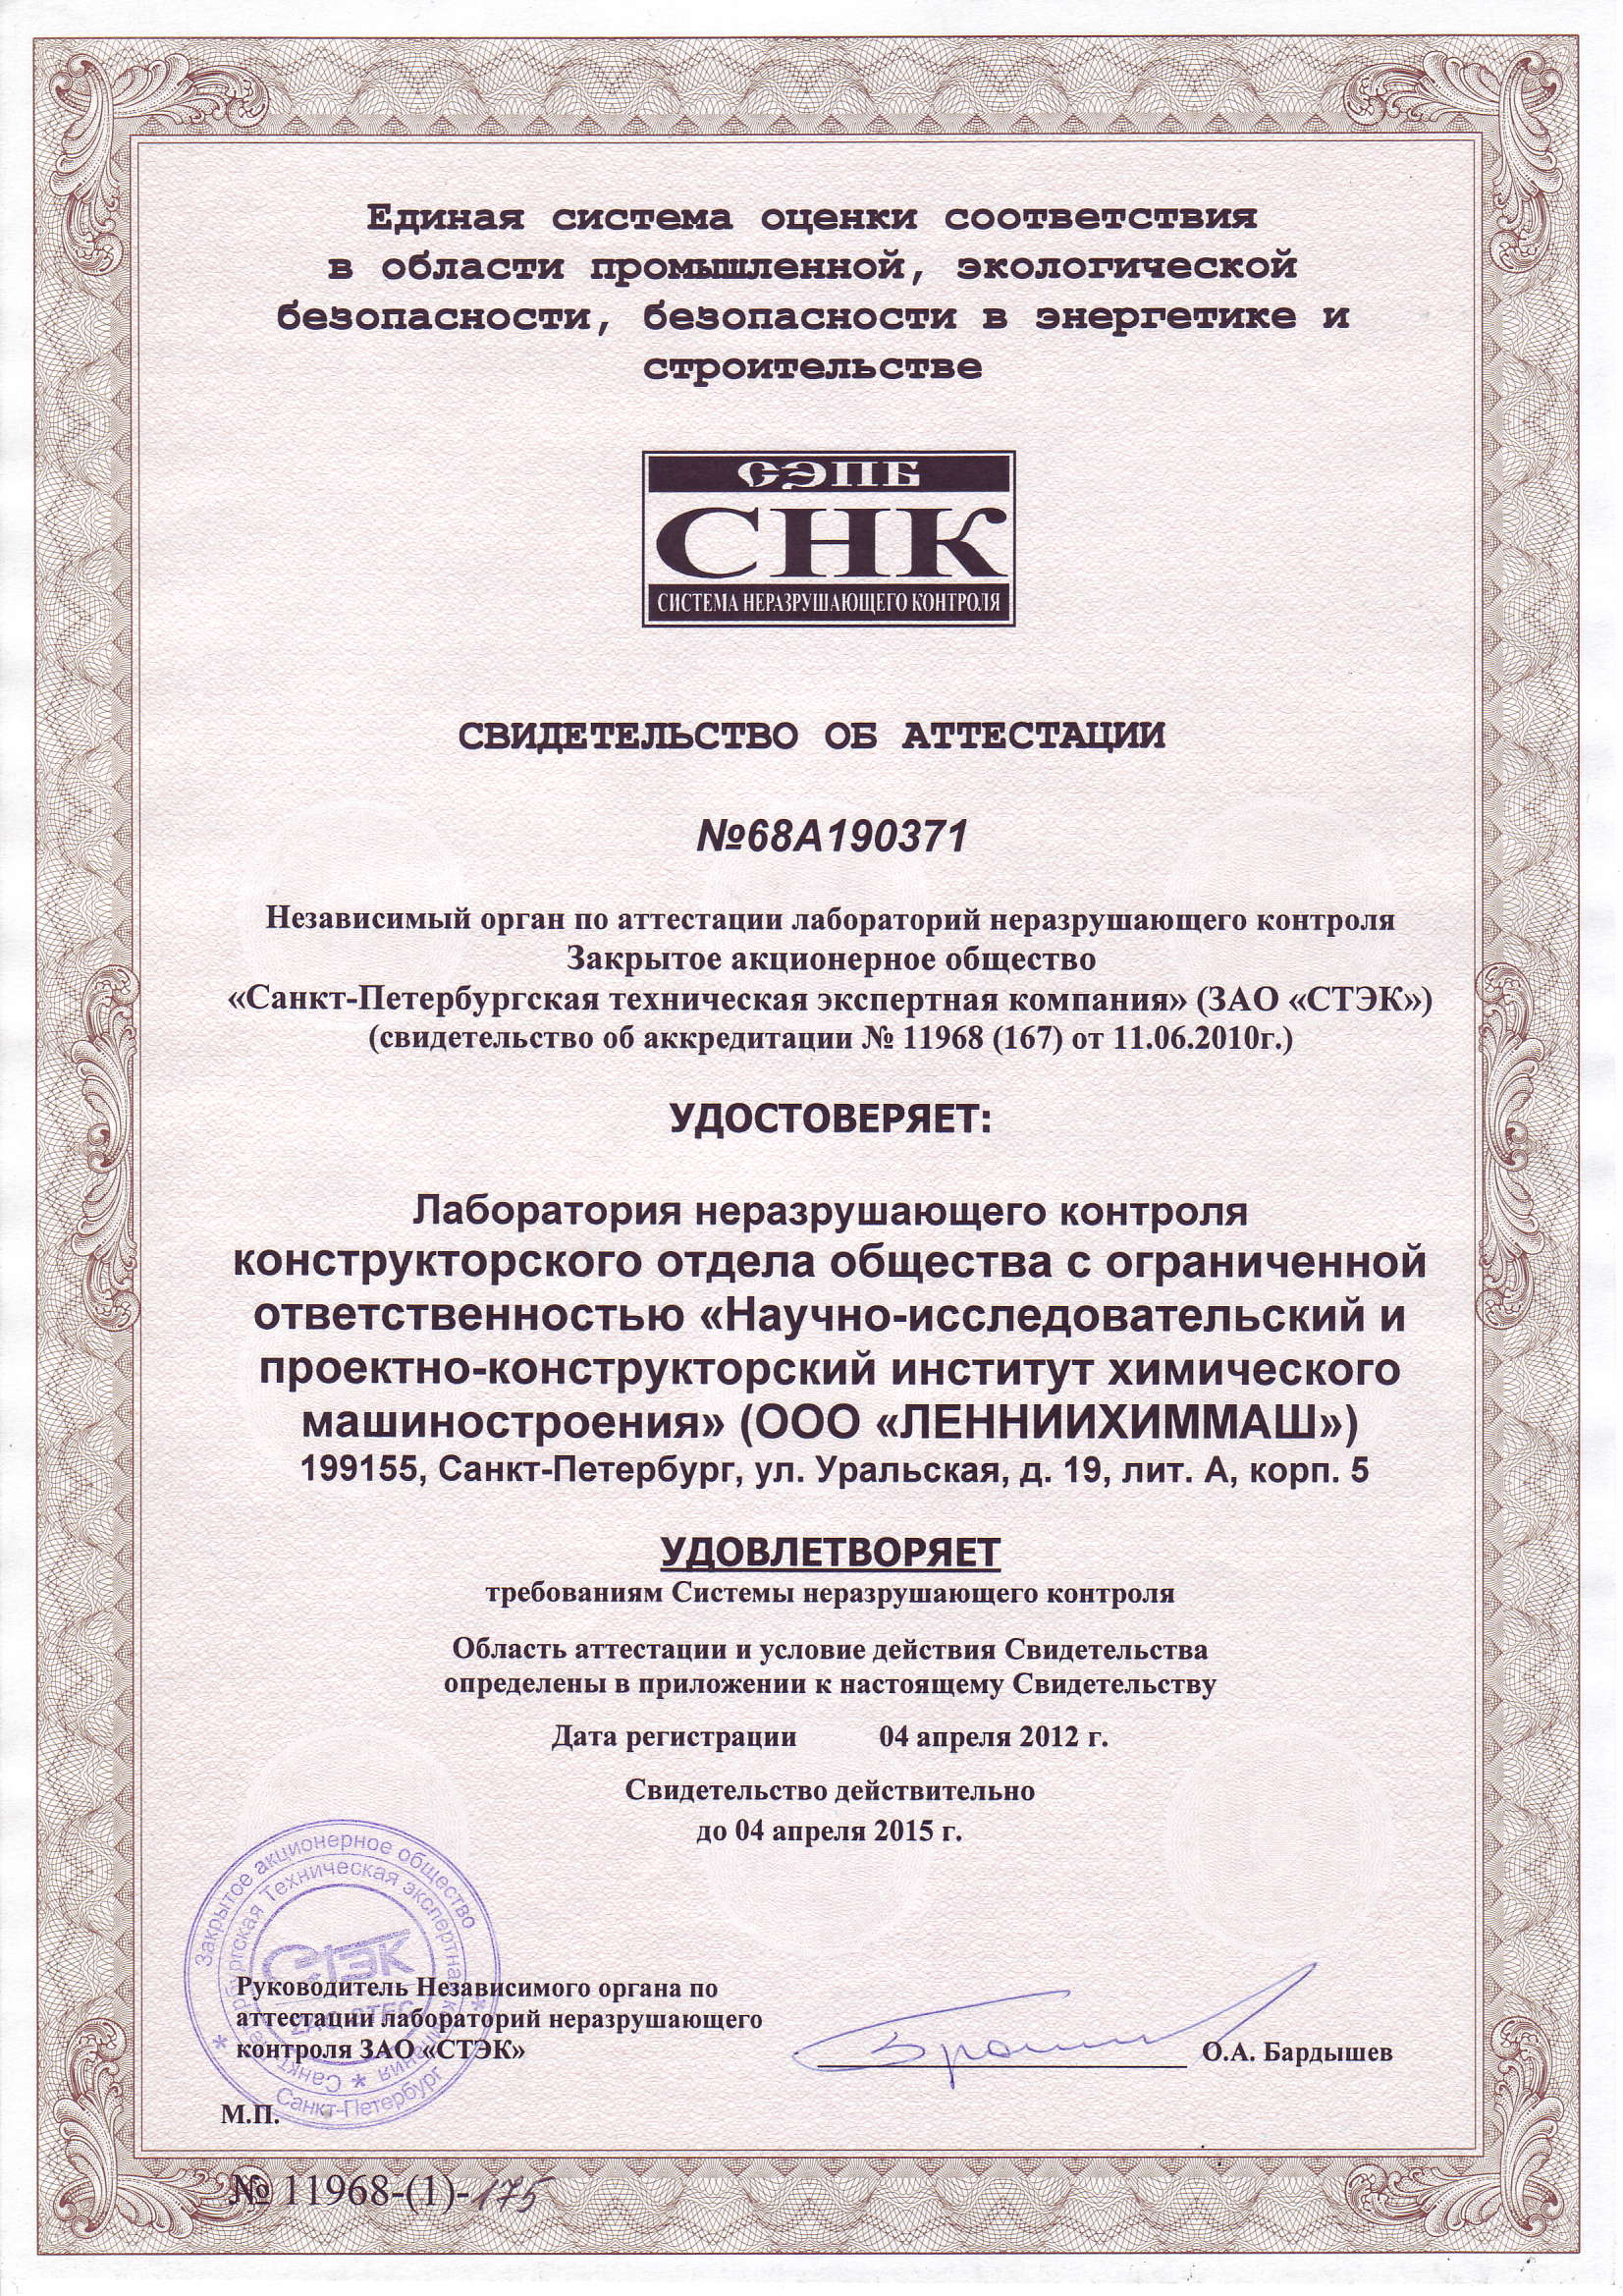 Certificate Of Laboratory Certification Ndt